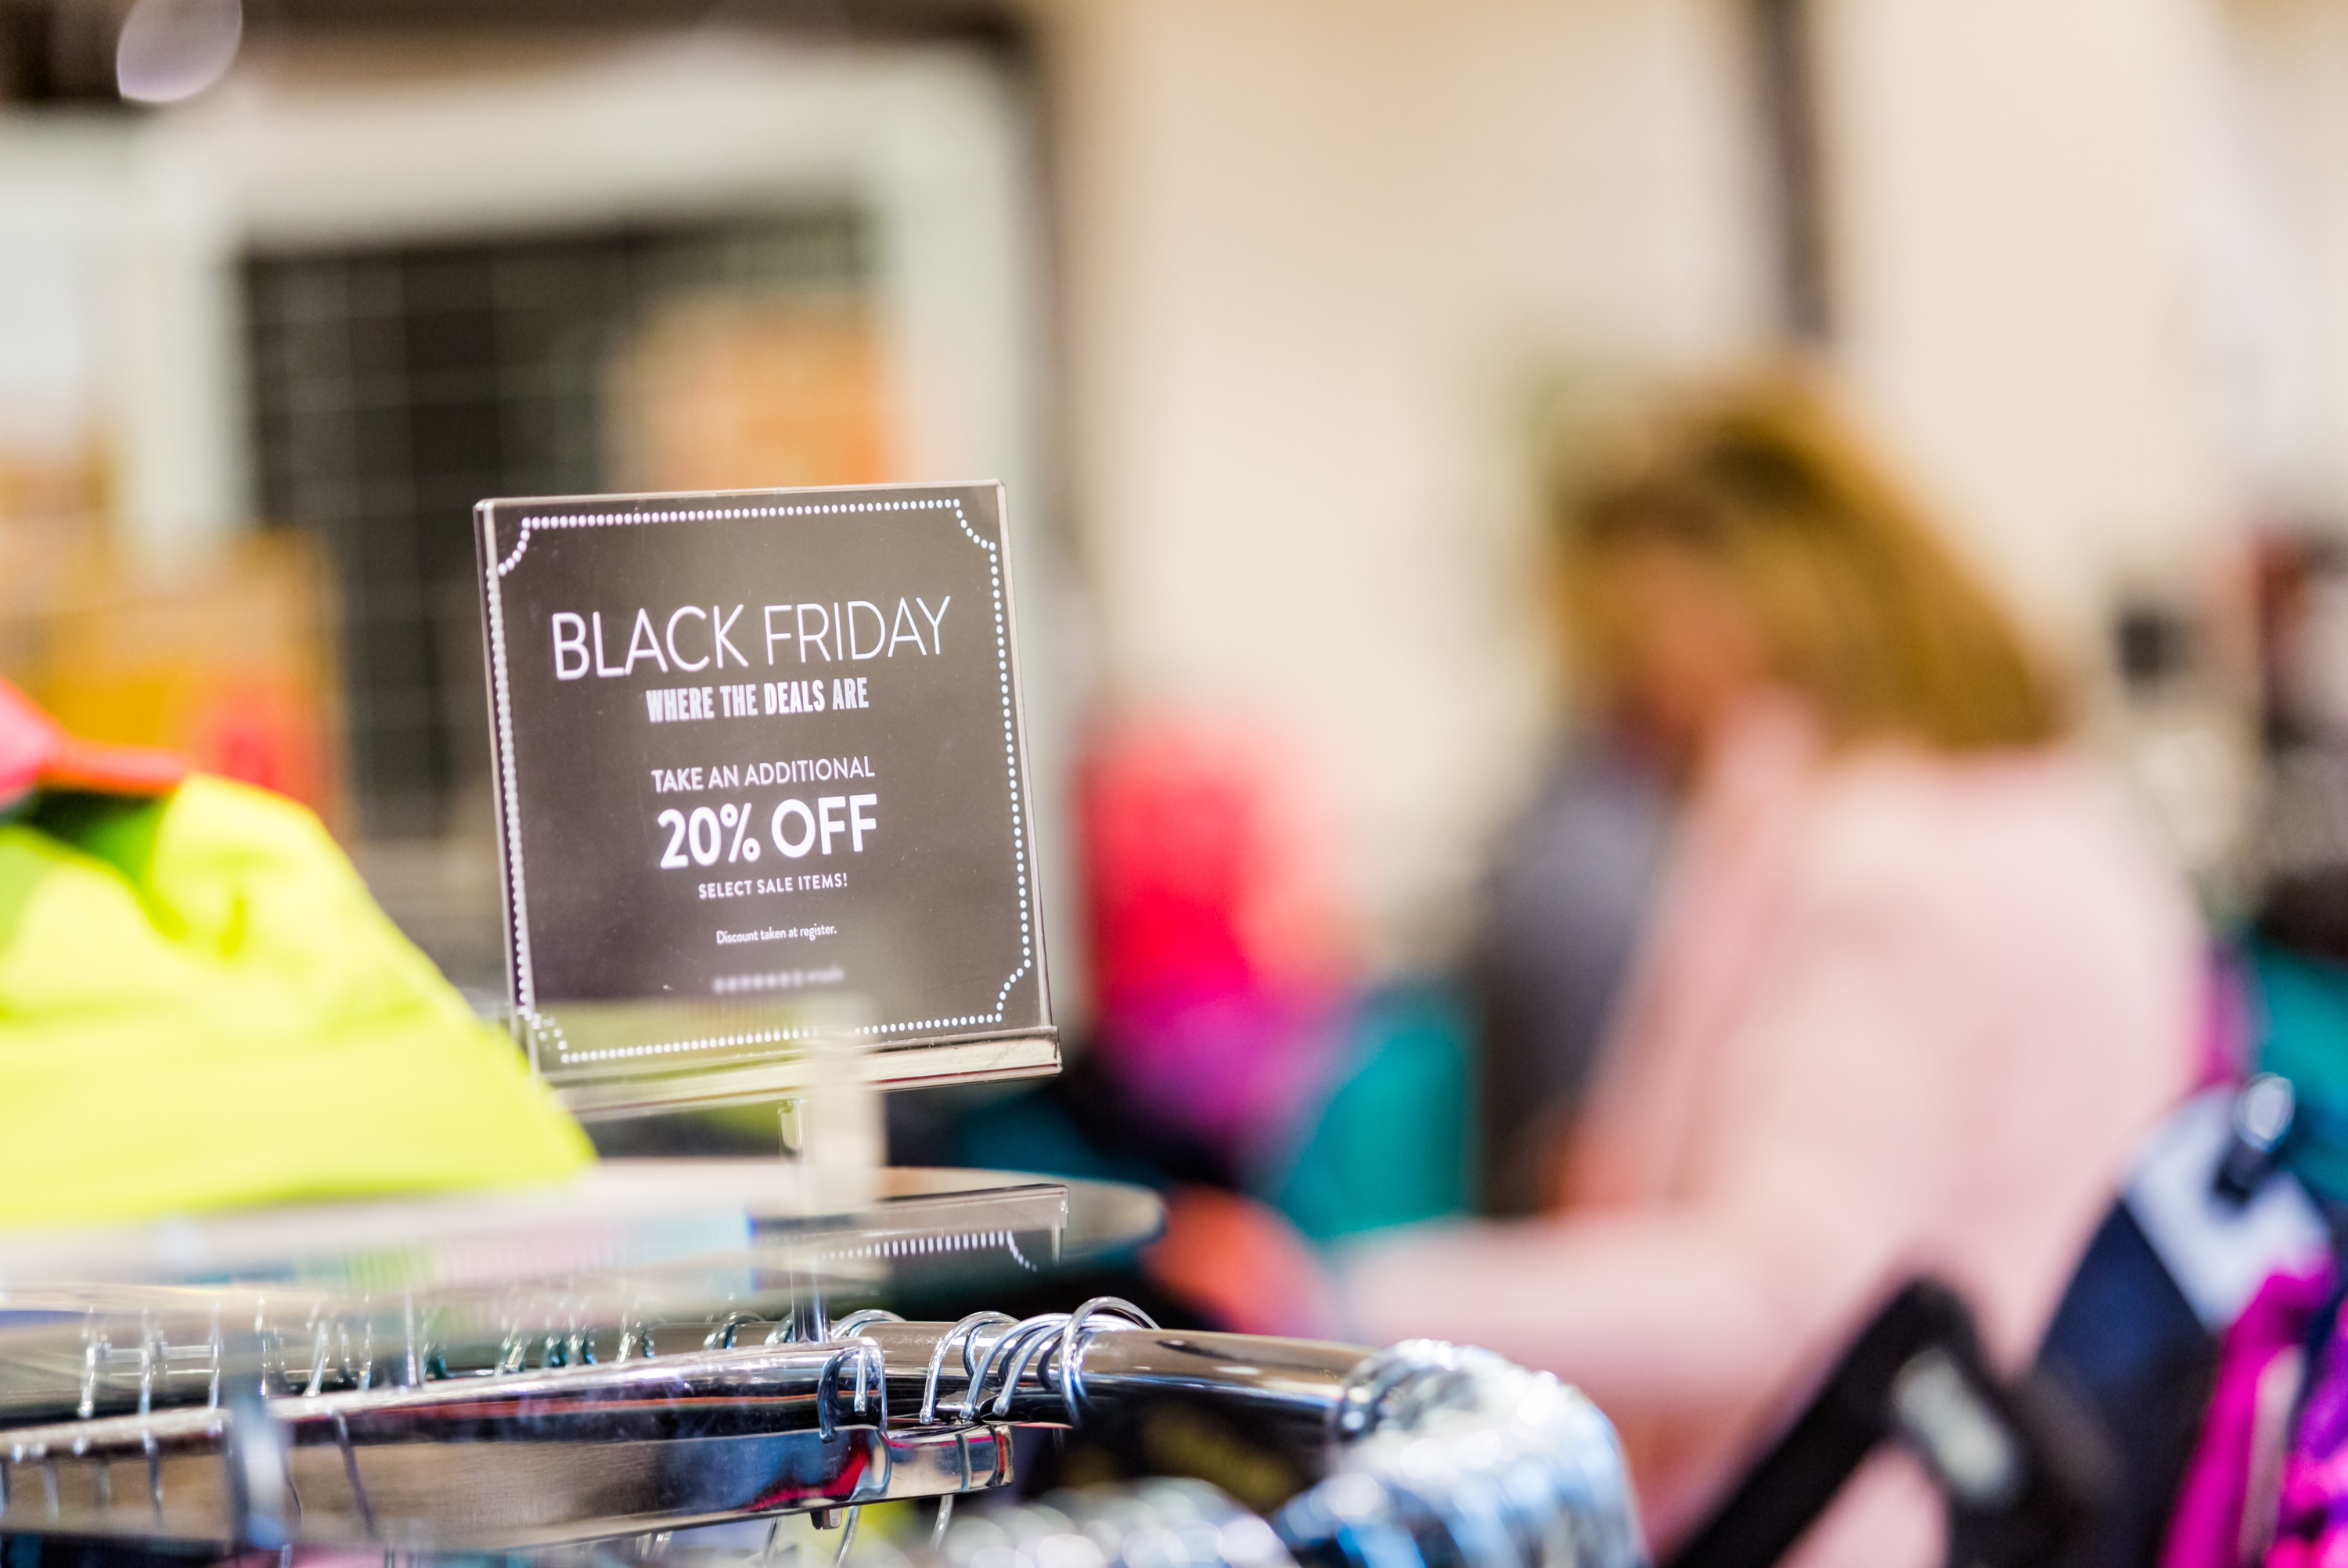 Www Black Friday Top 27 Black Friday Shopping Tips To Snag The Best Deals